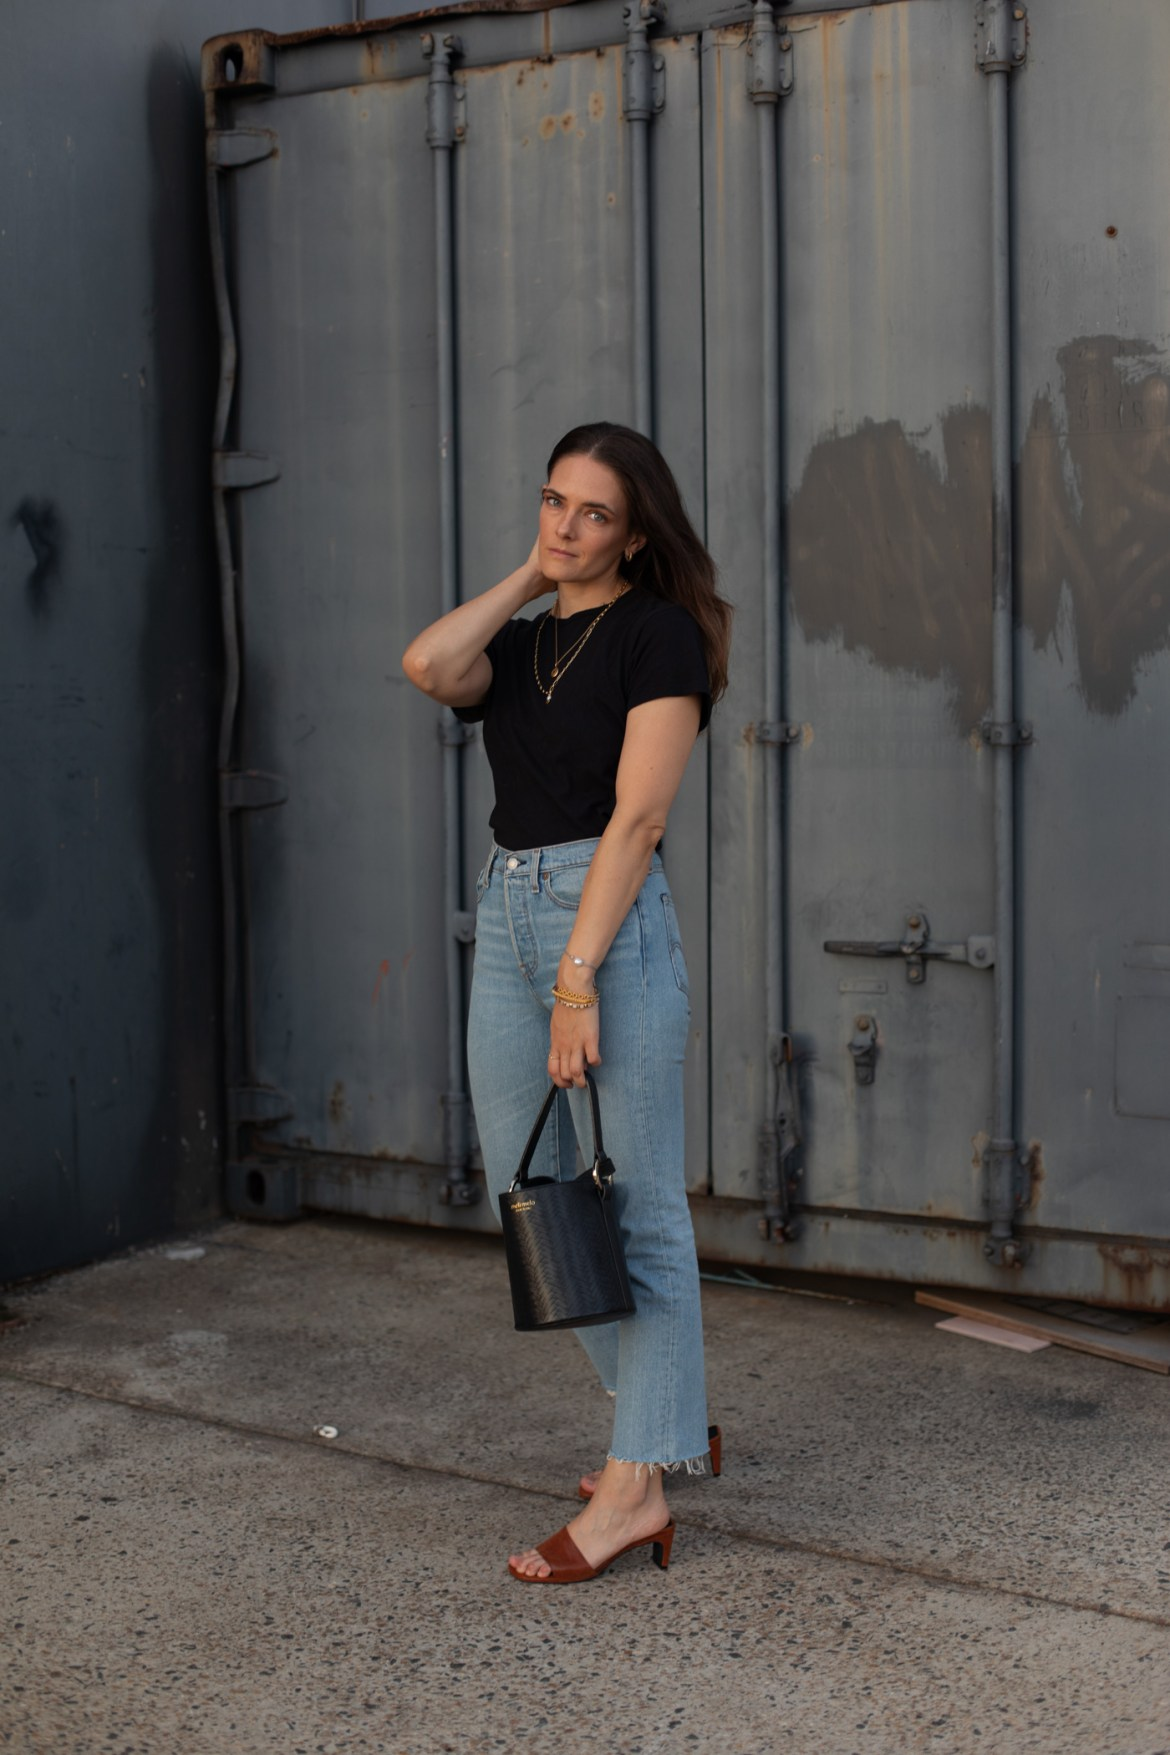 a few tips for styling jeans and tee outfits in new ways